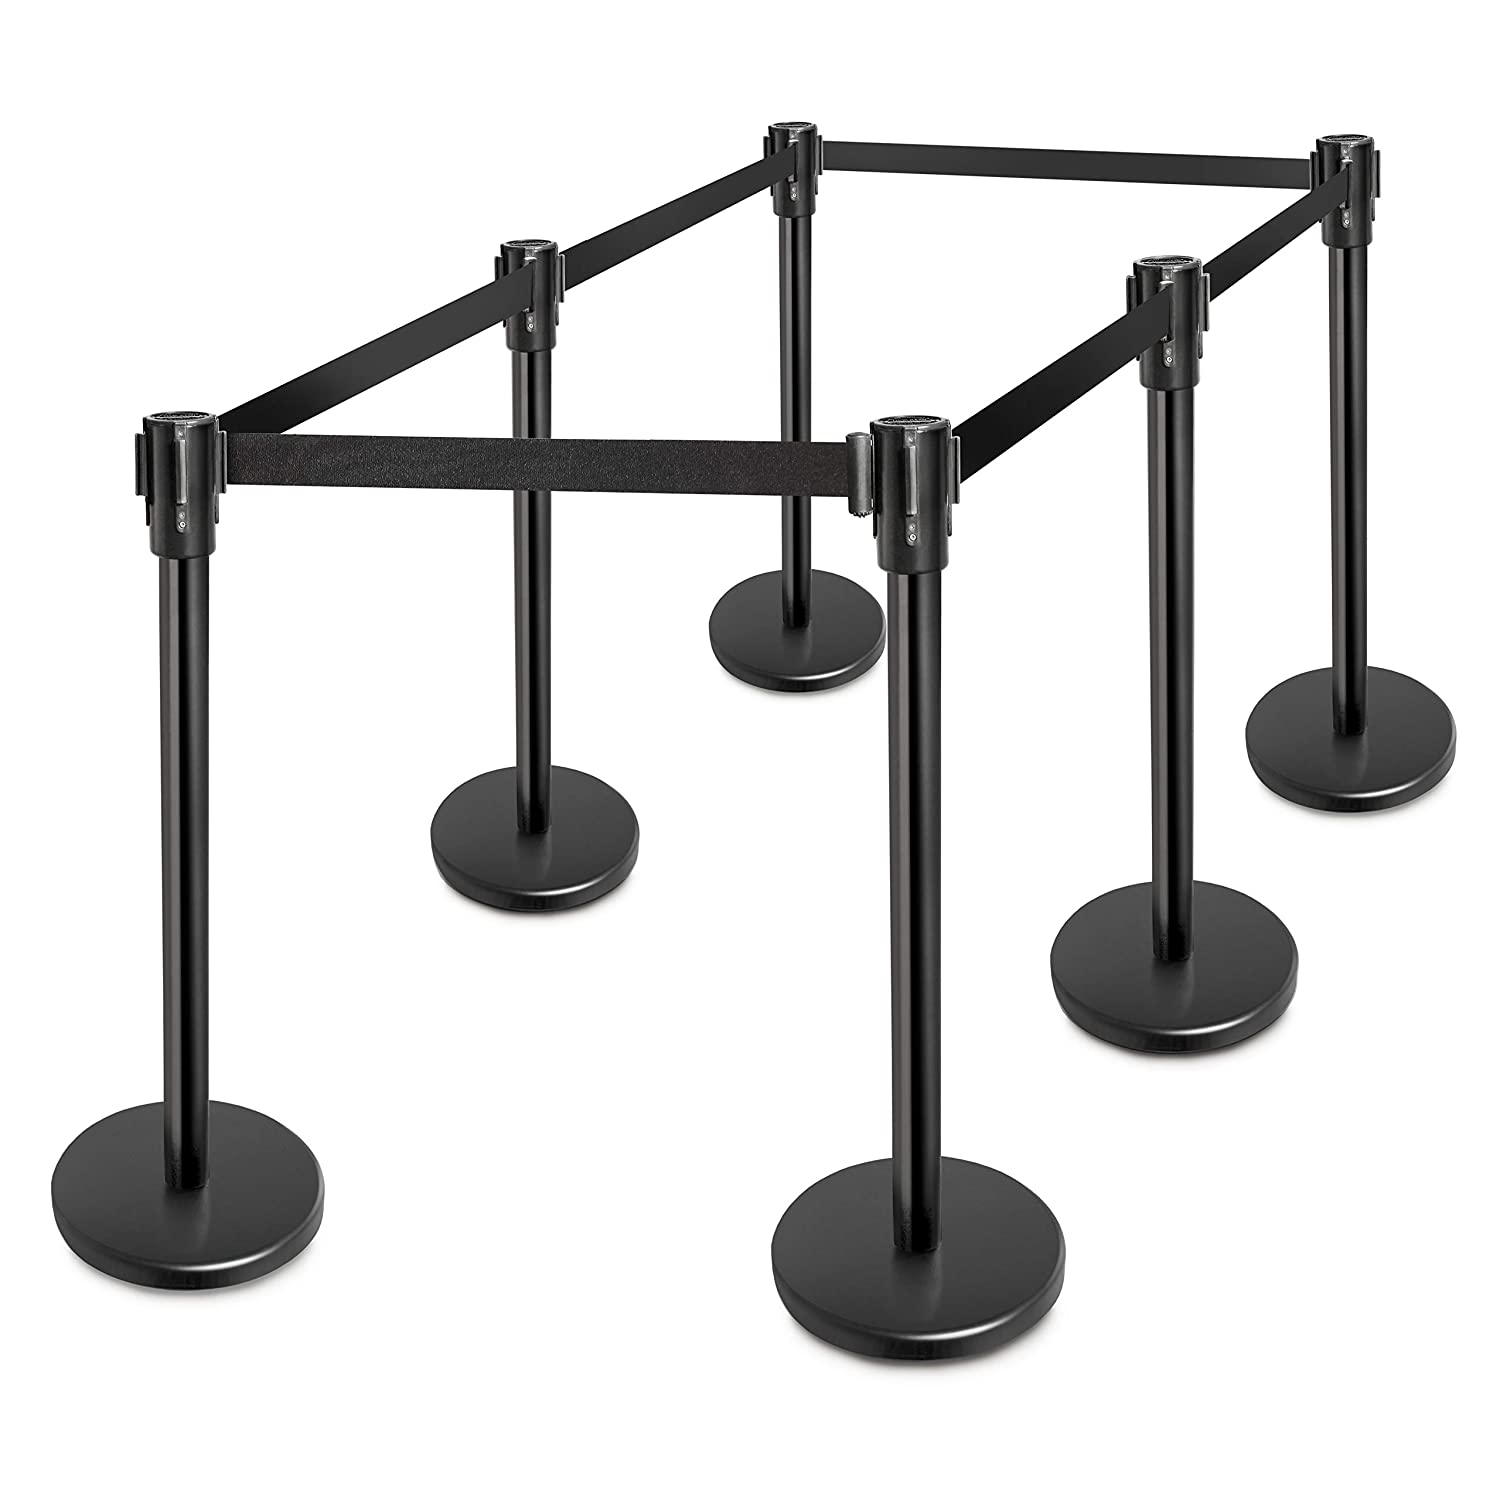 New Star Foodservice 54644 Black Powder Coated Stanchions, 36